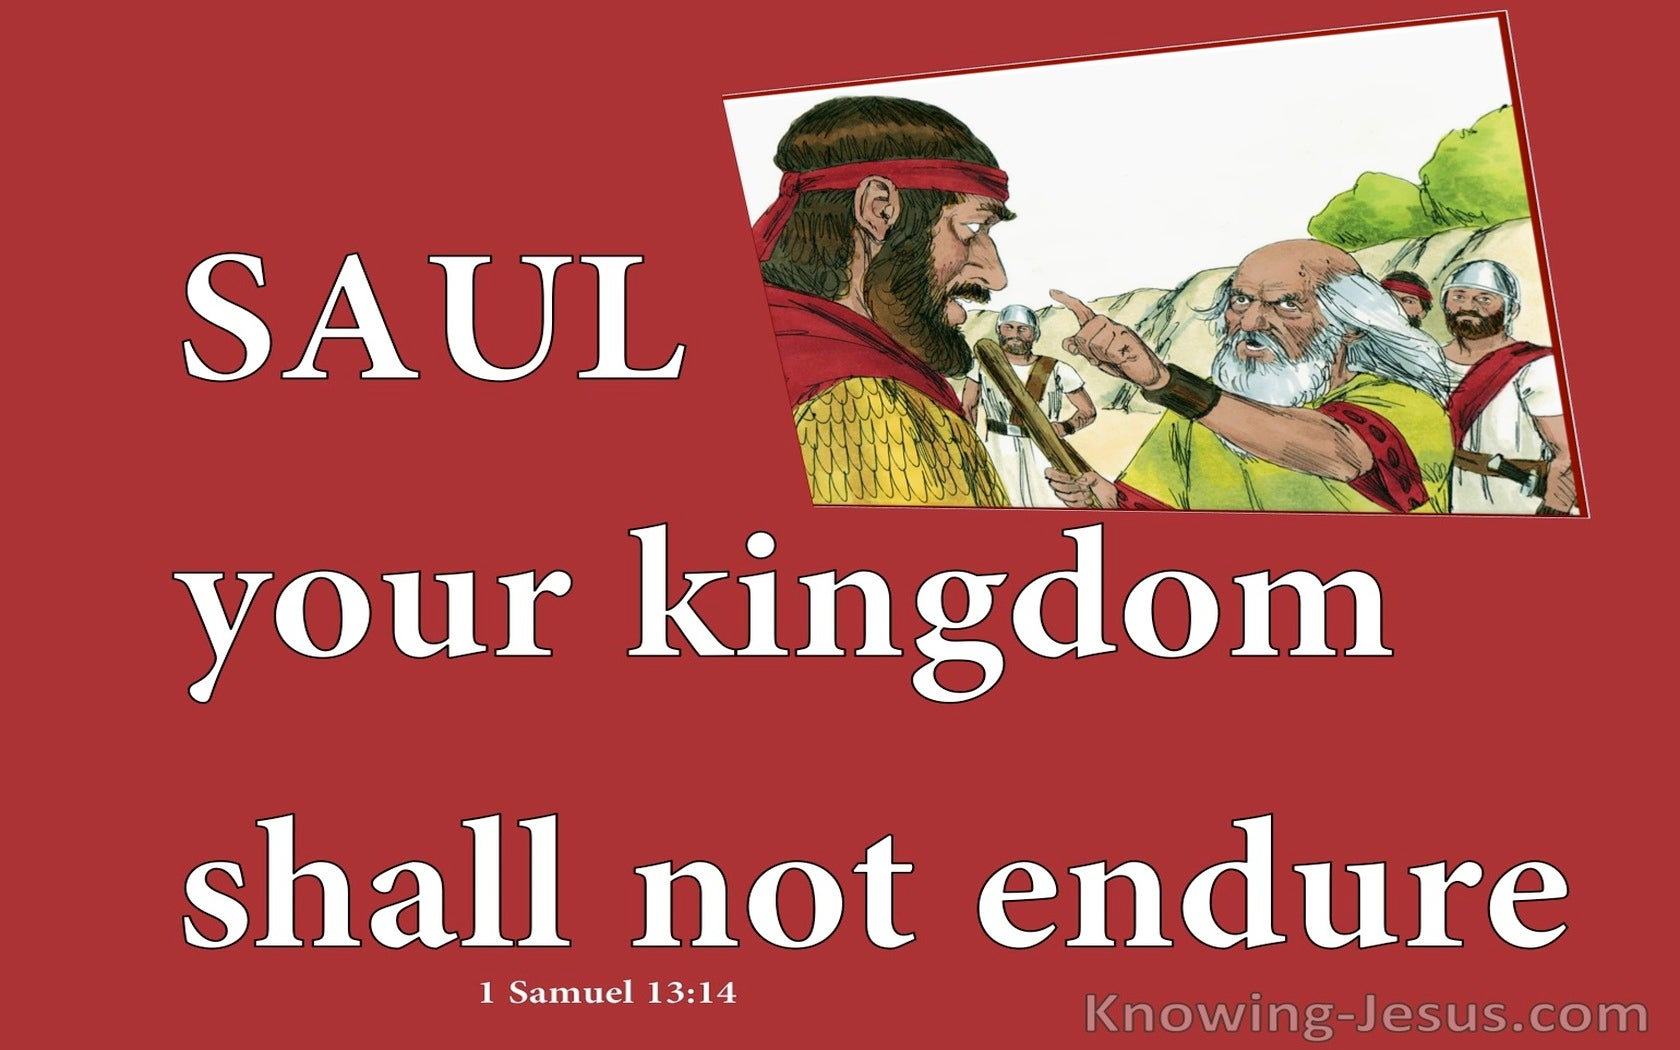 1 Samuel 13:14 Saul, Your Kingdom Shall Not Endure (red)